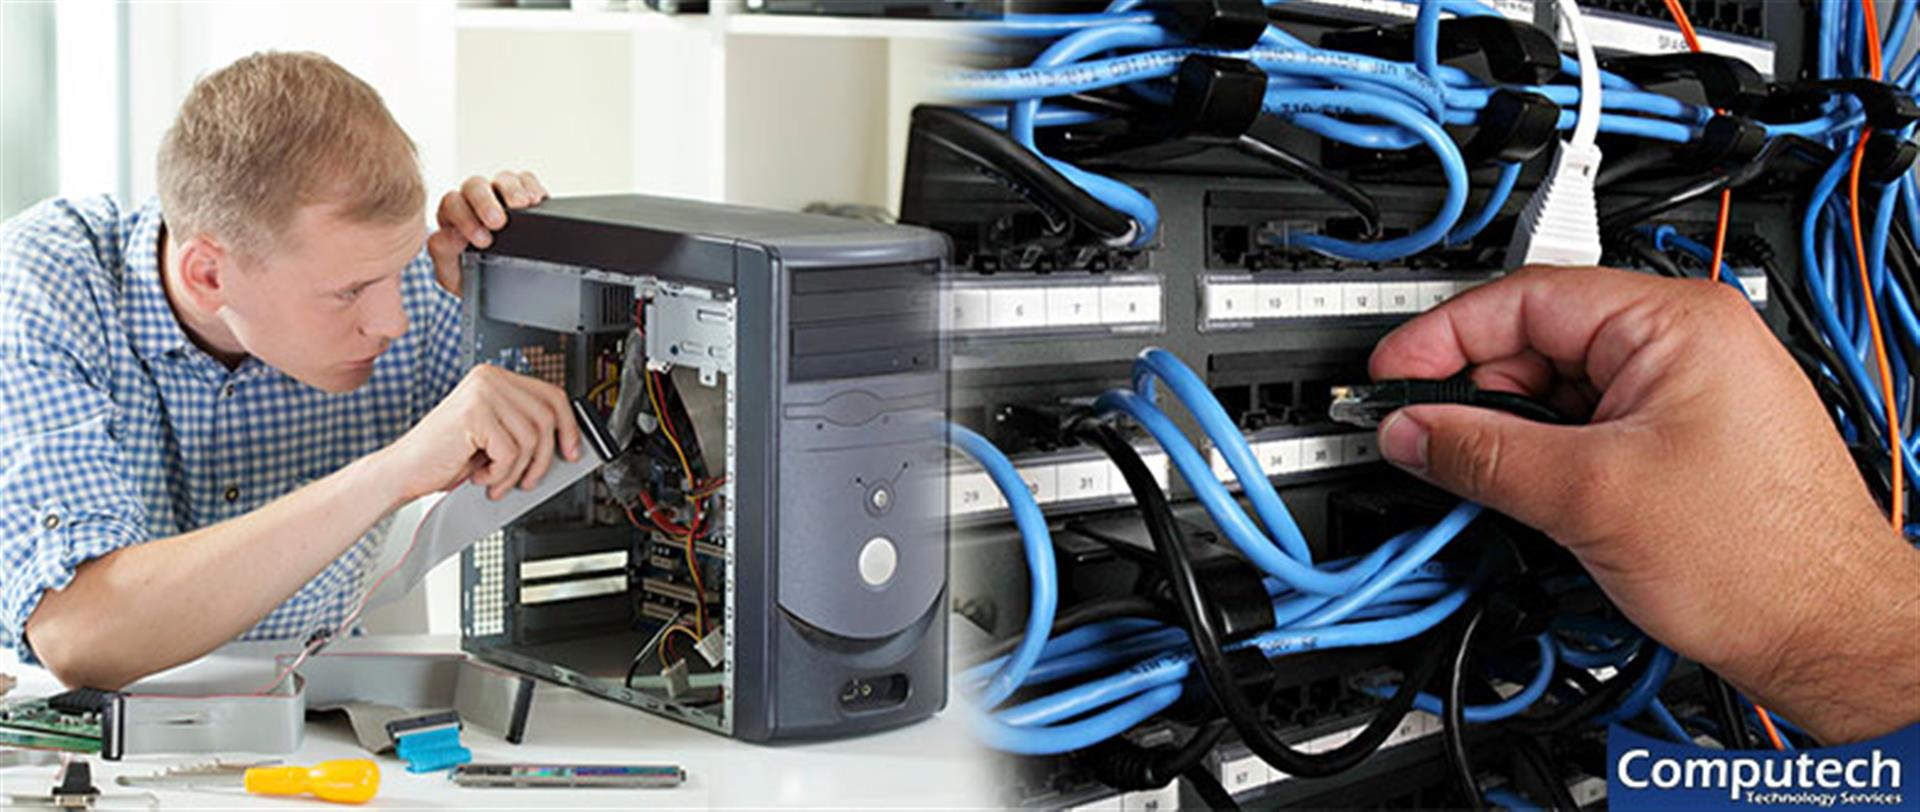 Richmond Virginia Onsite Computer & Printer Repairs, Networks, Voice & Data Cabling Solutions